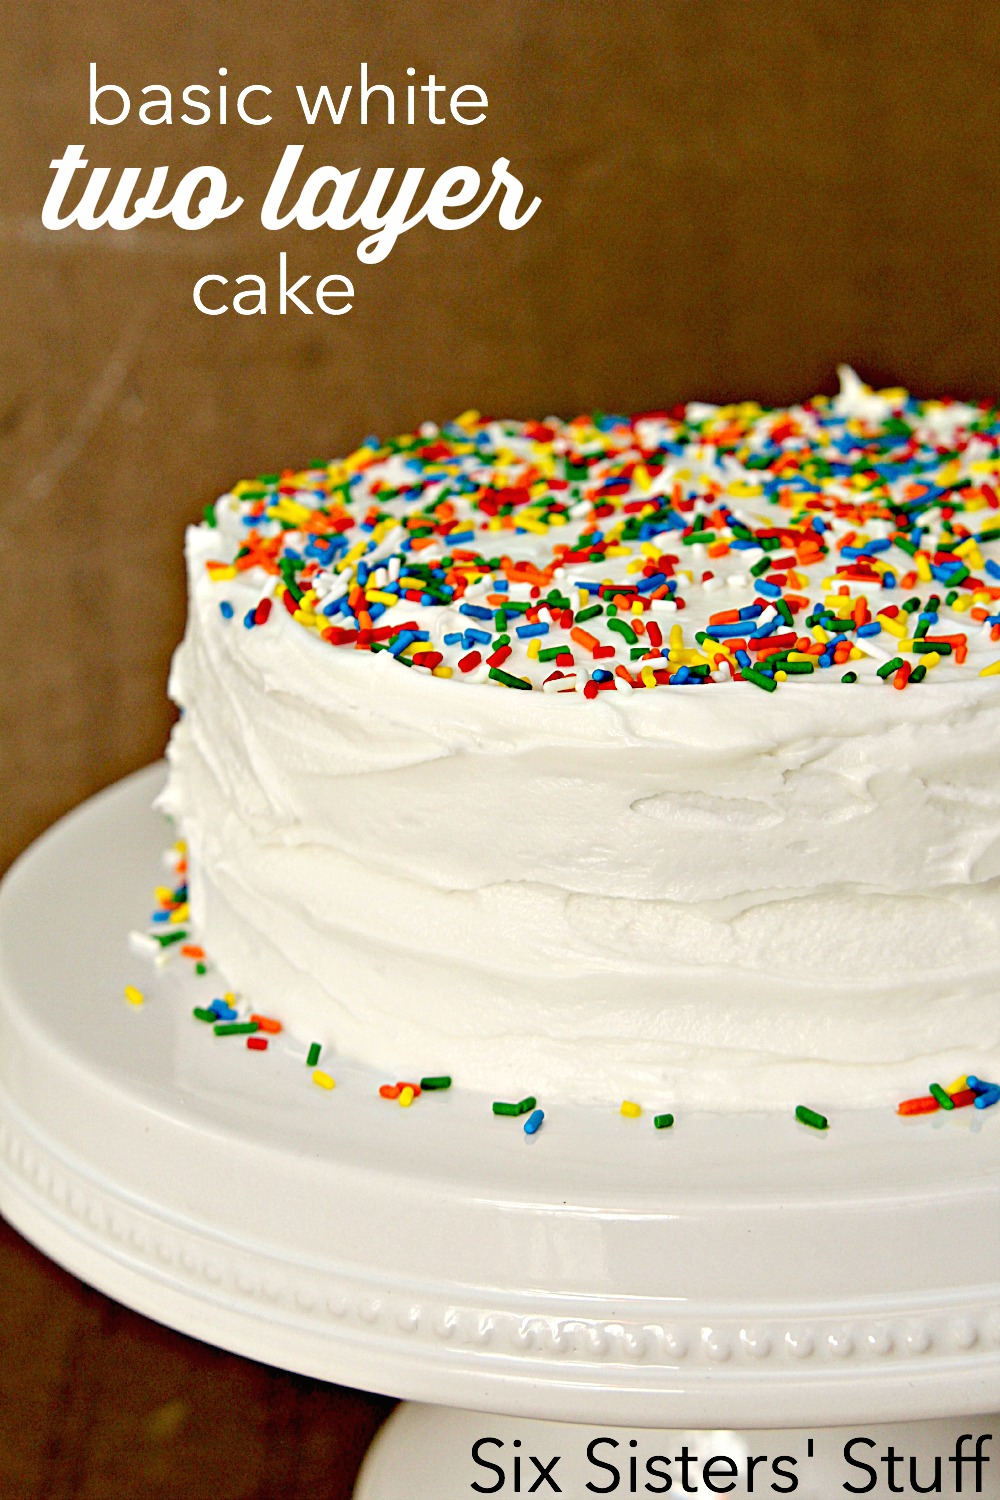 Basic White Two-Layer Cake and White Buttercream Frosting Recipe